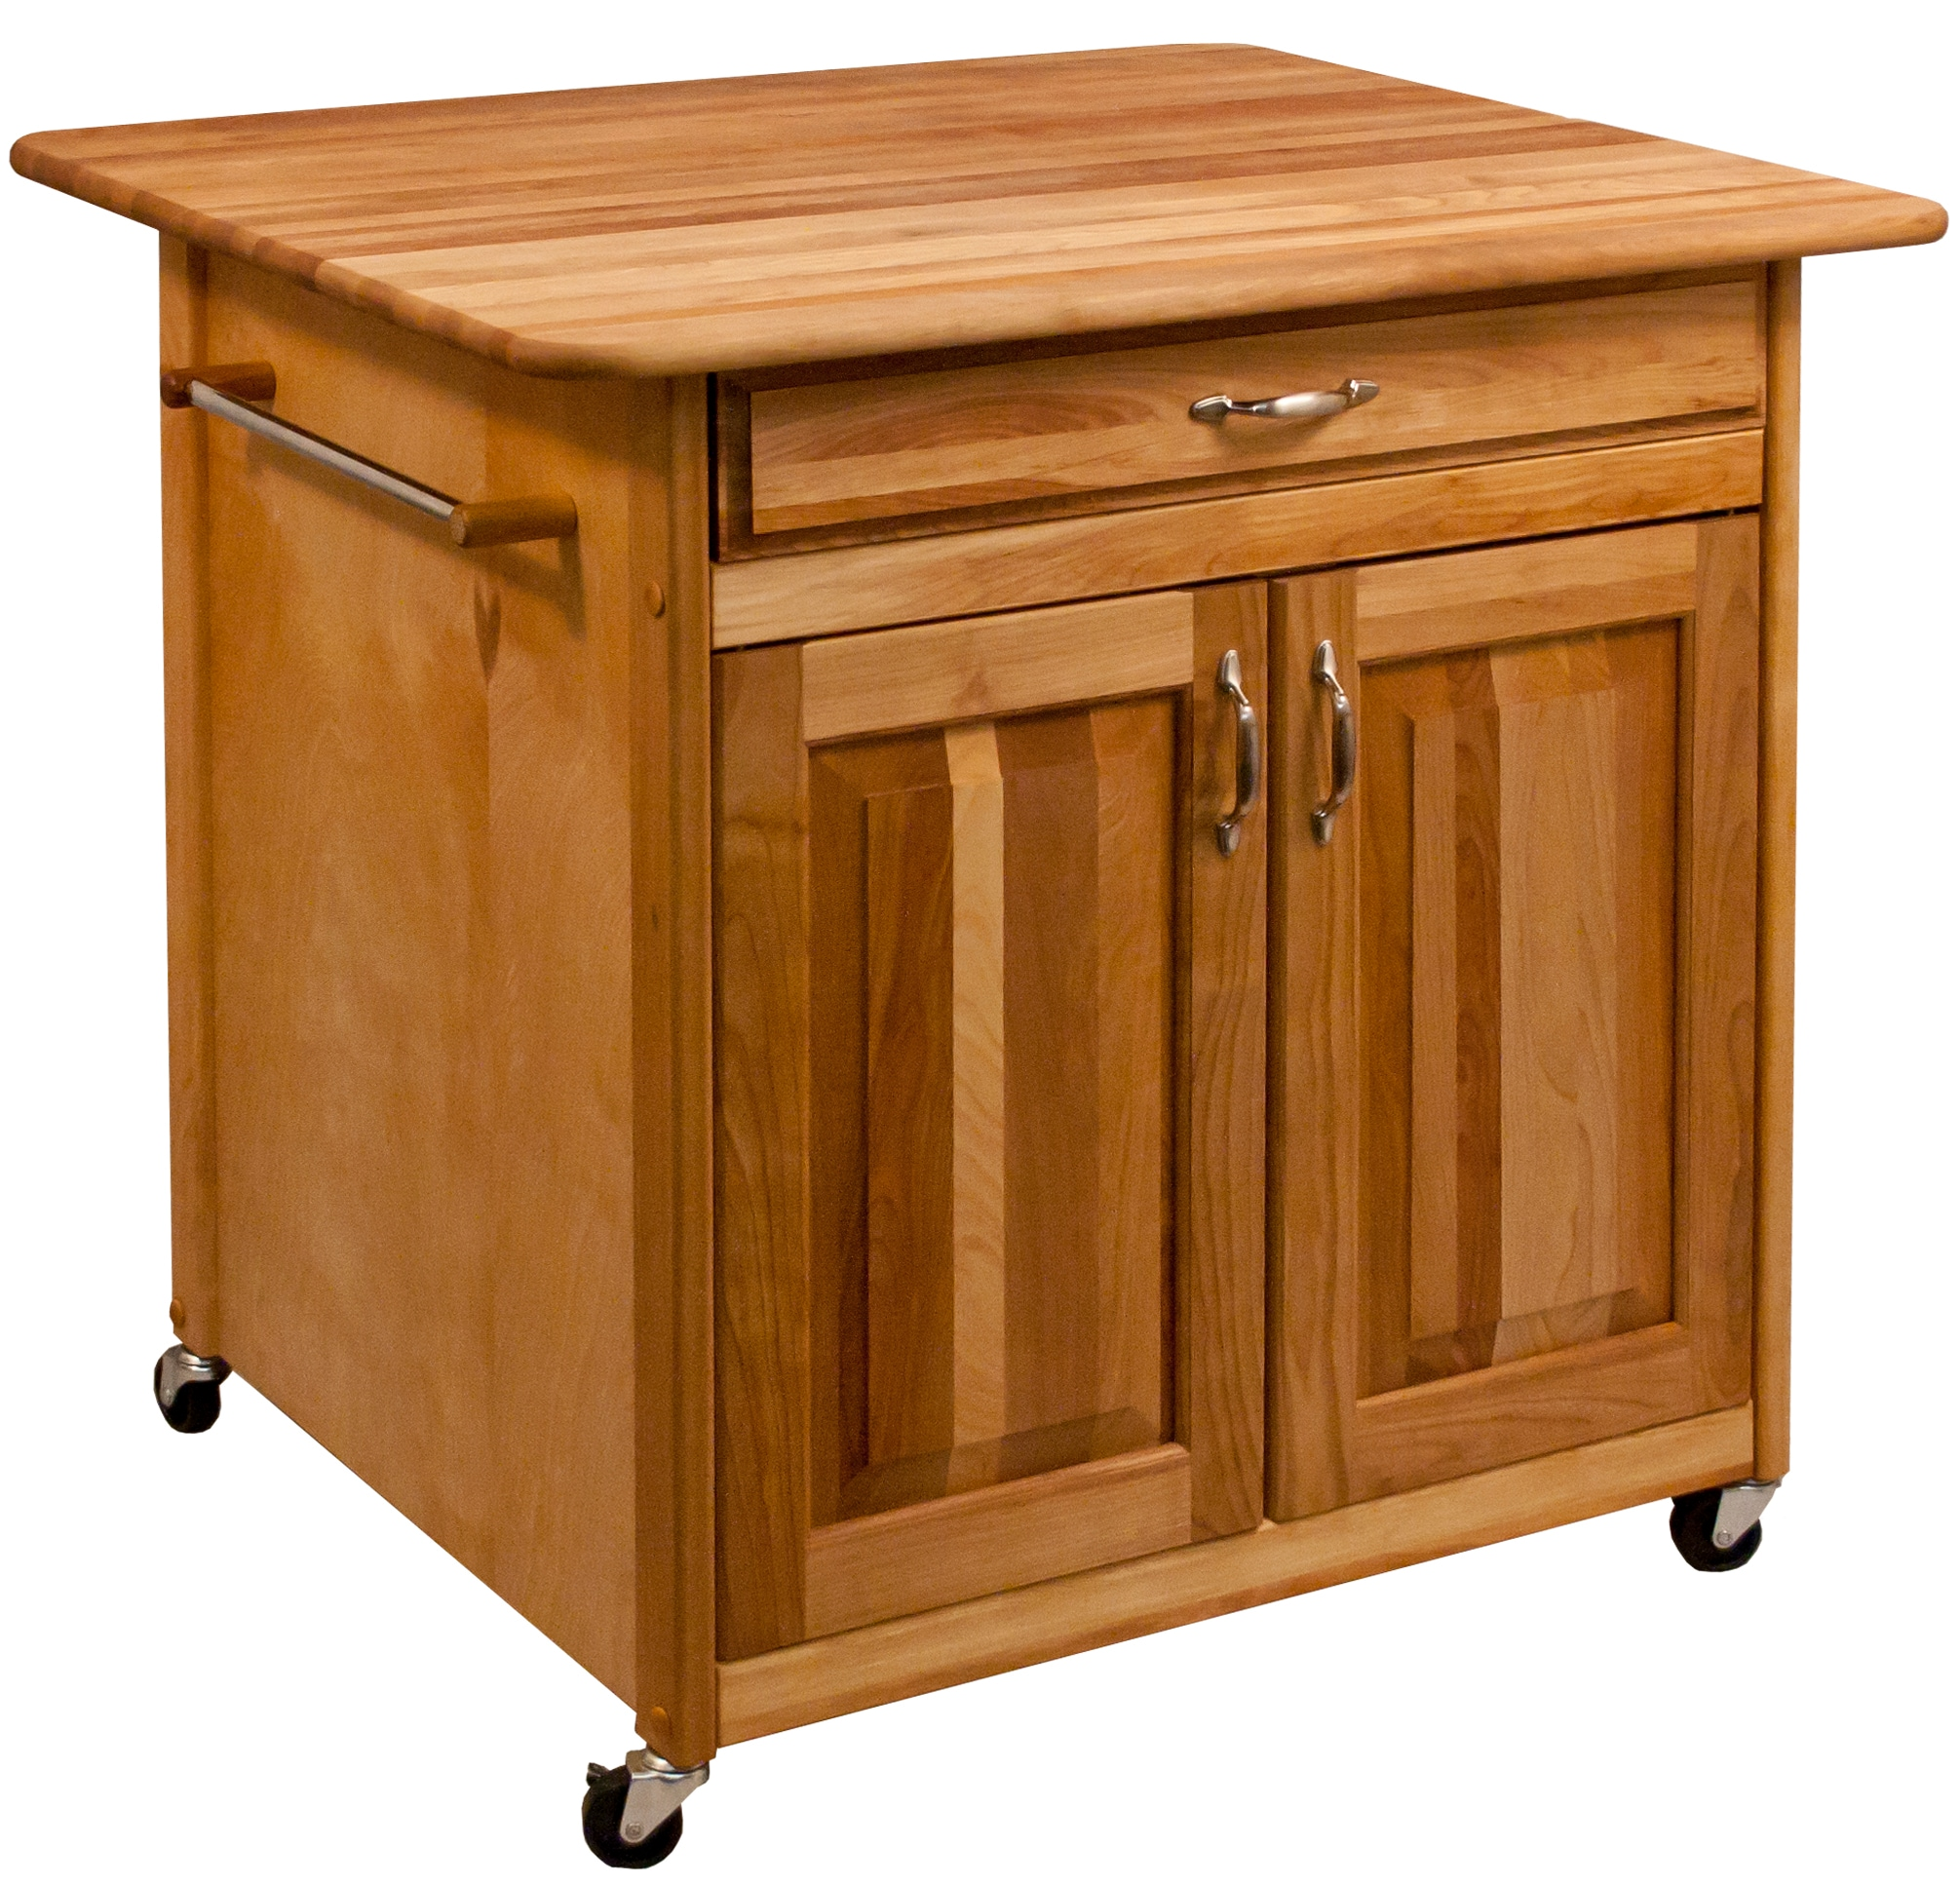 Catskill Craftsmen Brown Wood Base With Birch Butcher Block Top Kitchen Island 30 In X 36 In X 34 5 In In The Kitchen Islands Carts Department At Lowes Com